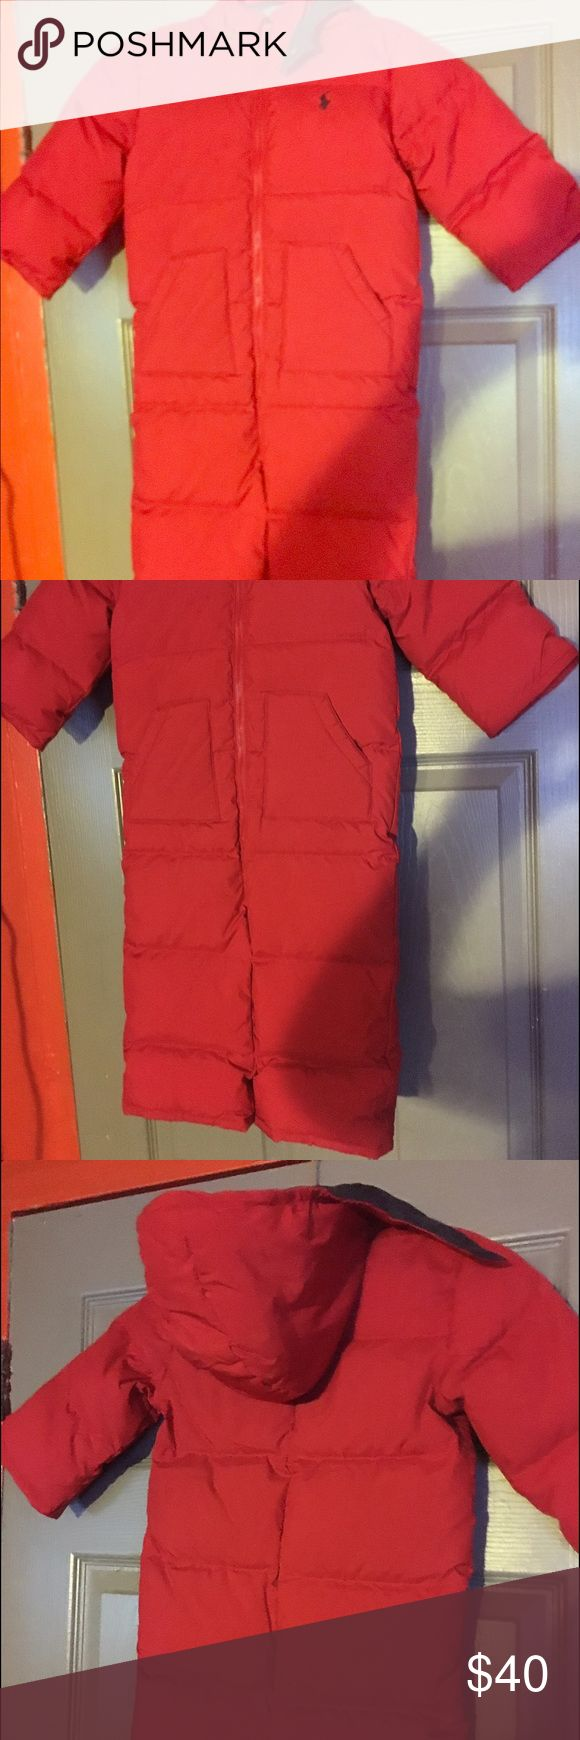 Toddler Snow suit Toddler never worn red snow suit 24 months brand new condition Polo by Ralph Lauren Jackets & Coats Puffers